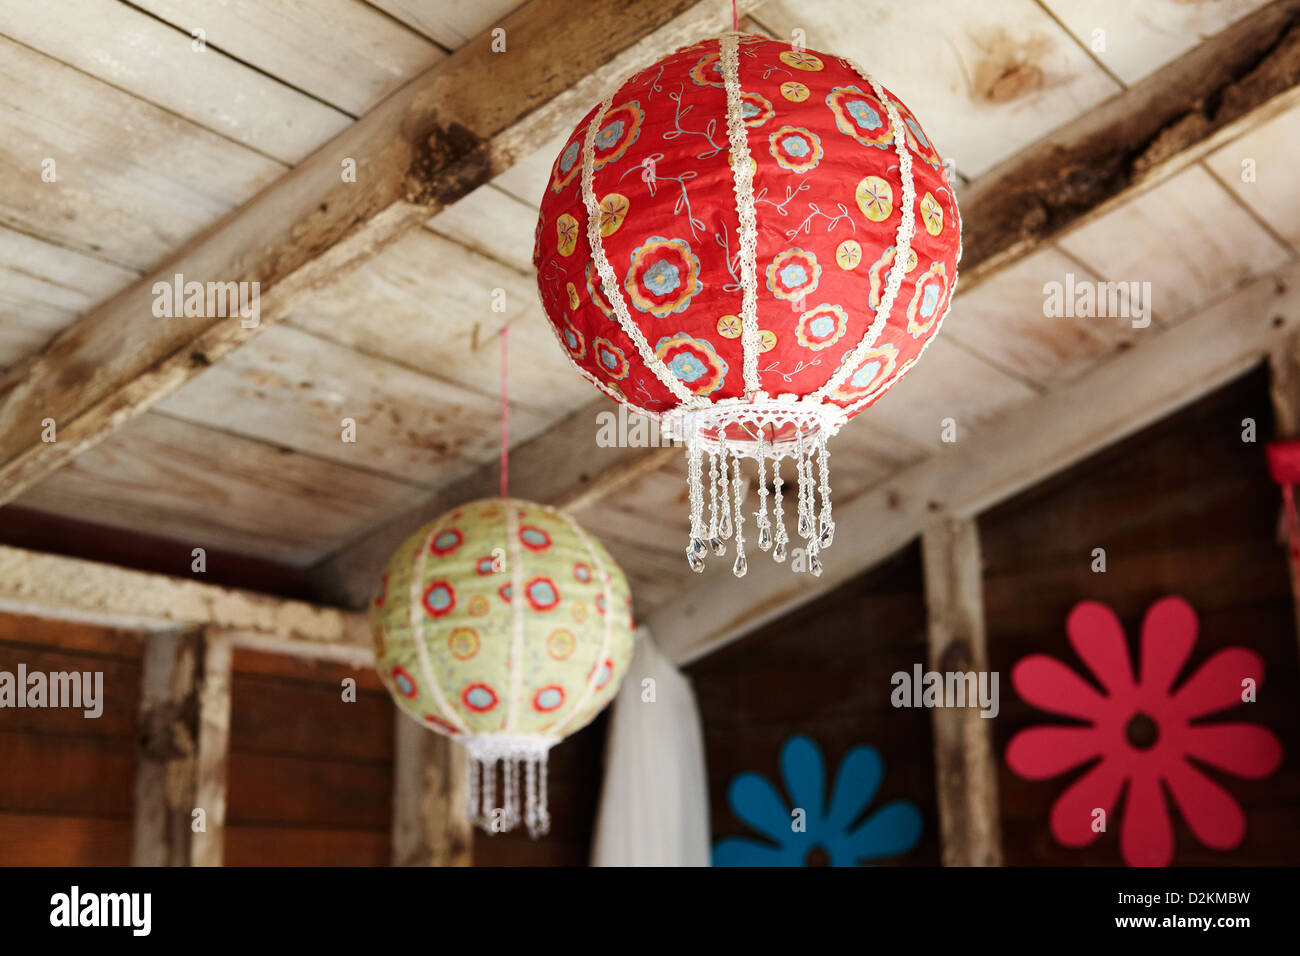 Lanterns hanging from ceiling - Stock Image